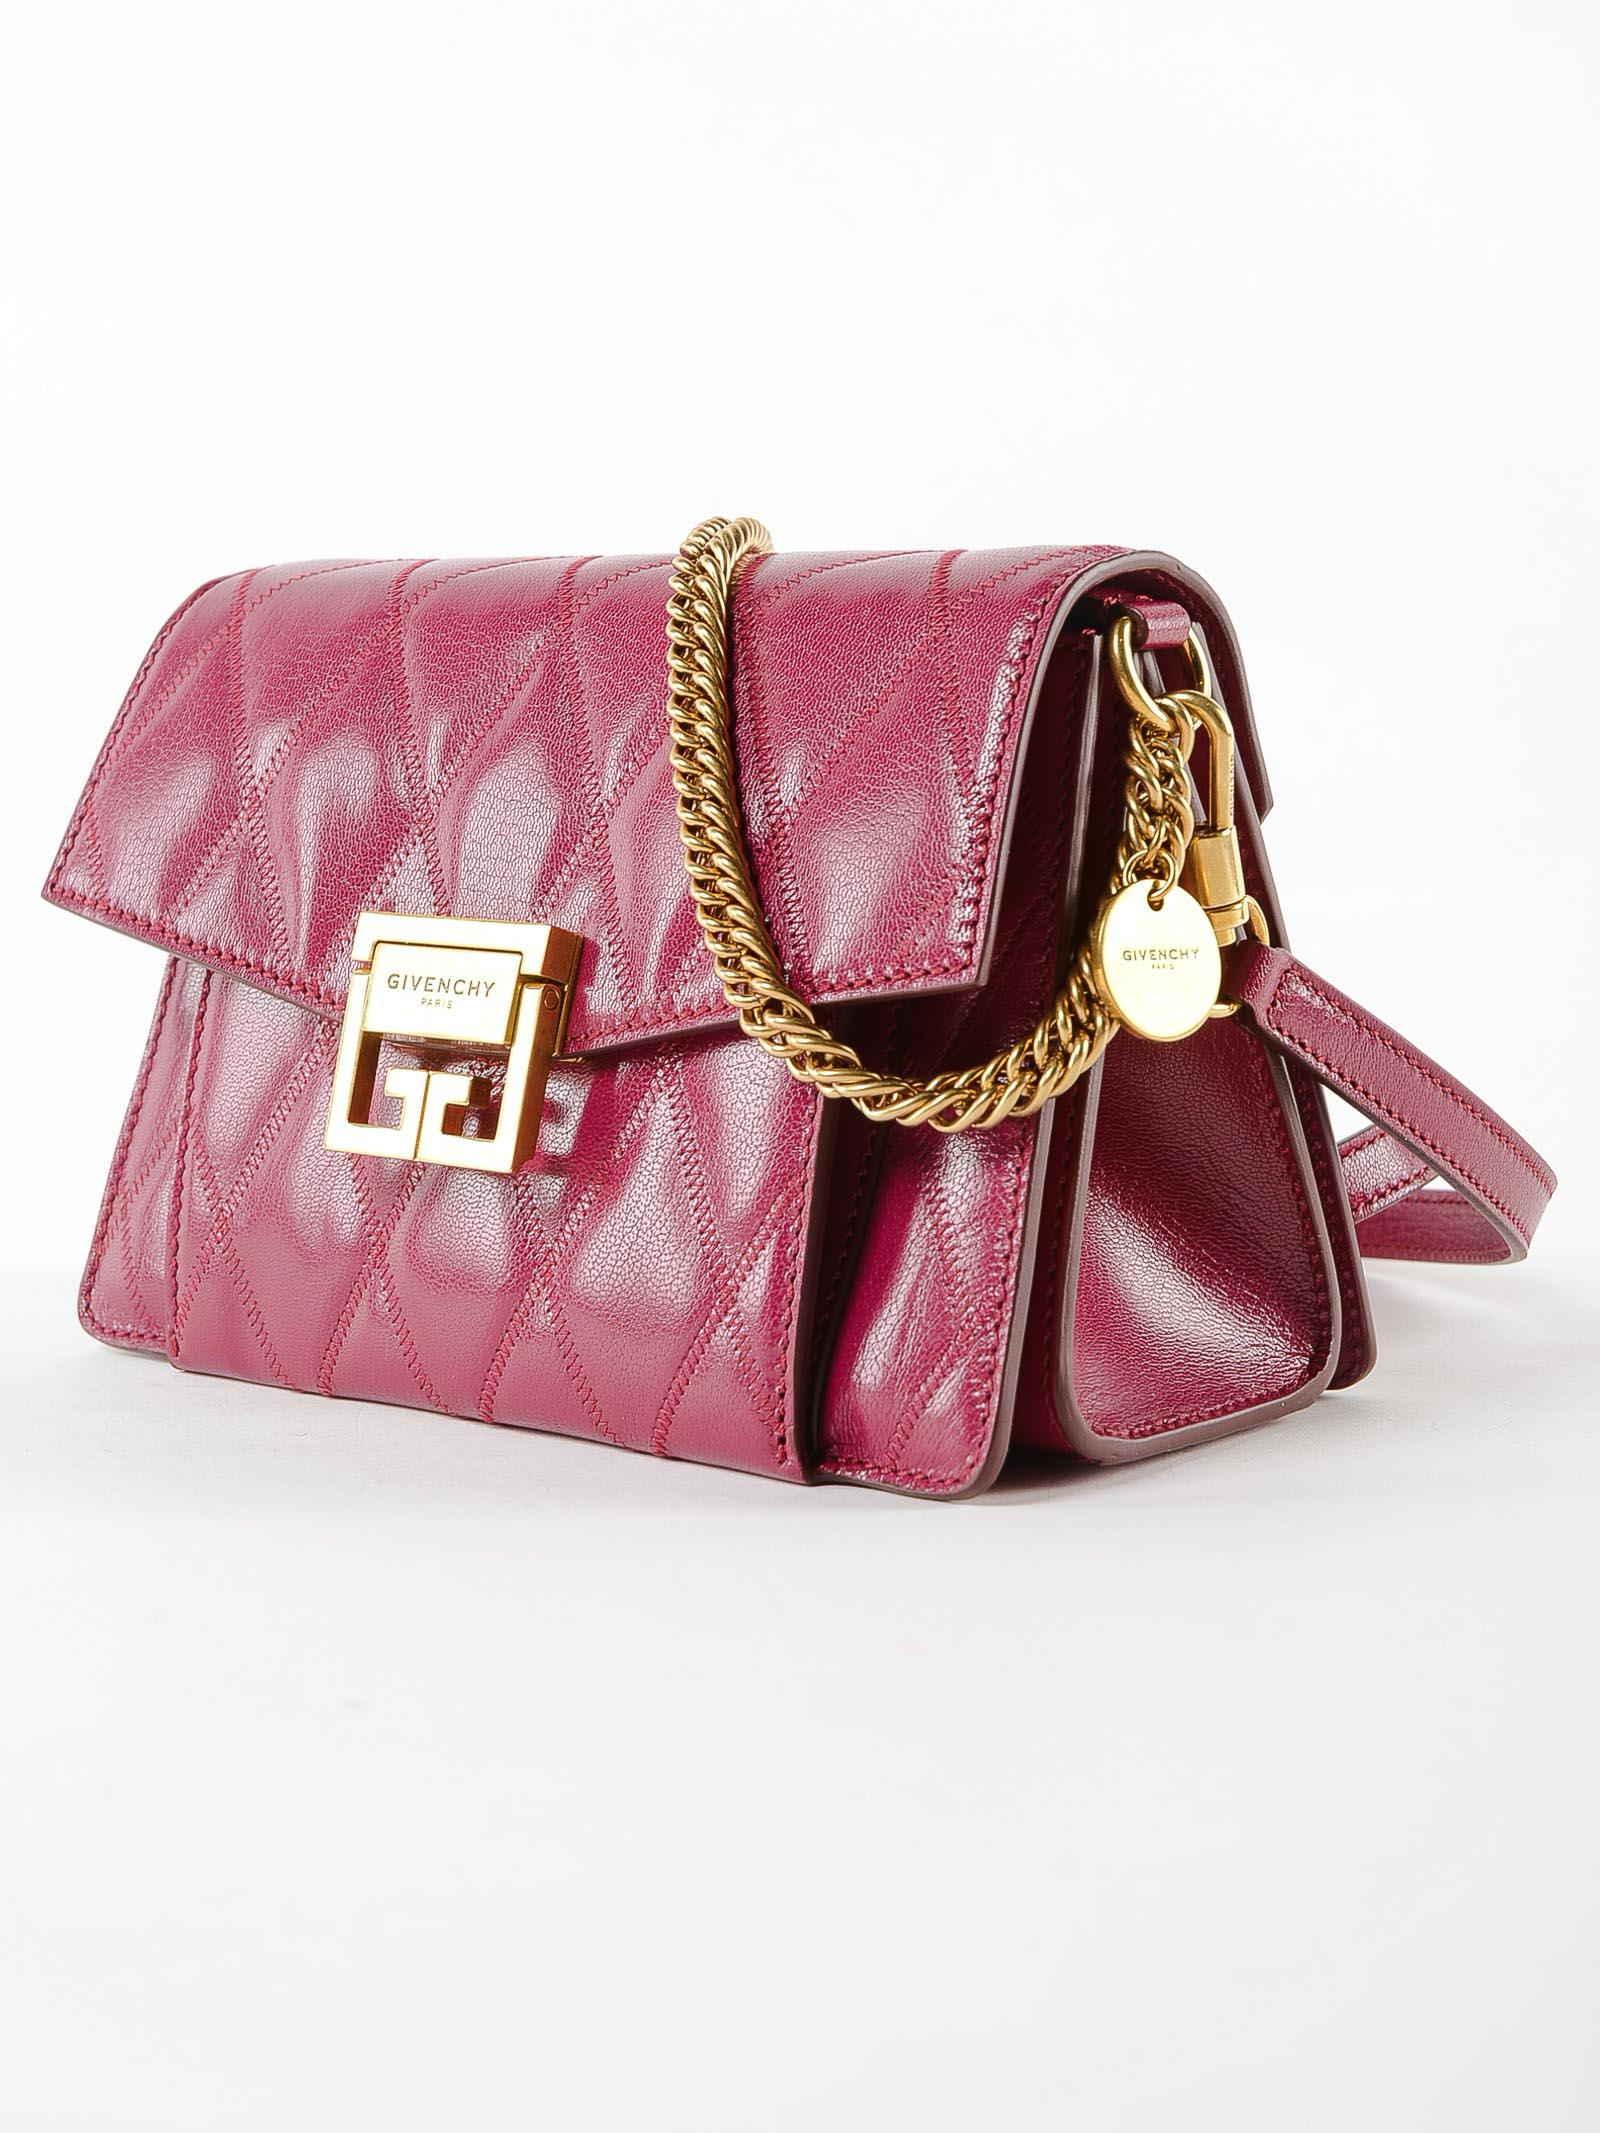 Givenchy Gv3 Small Bag in Purple - Lyst 7874a330e51cd